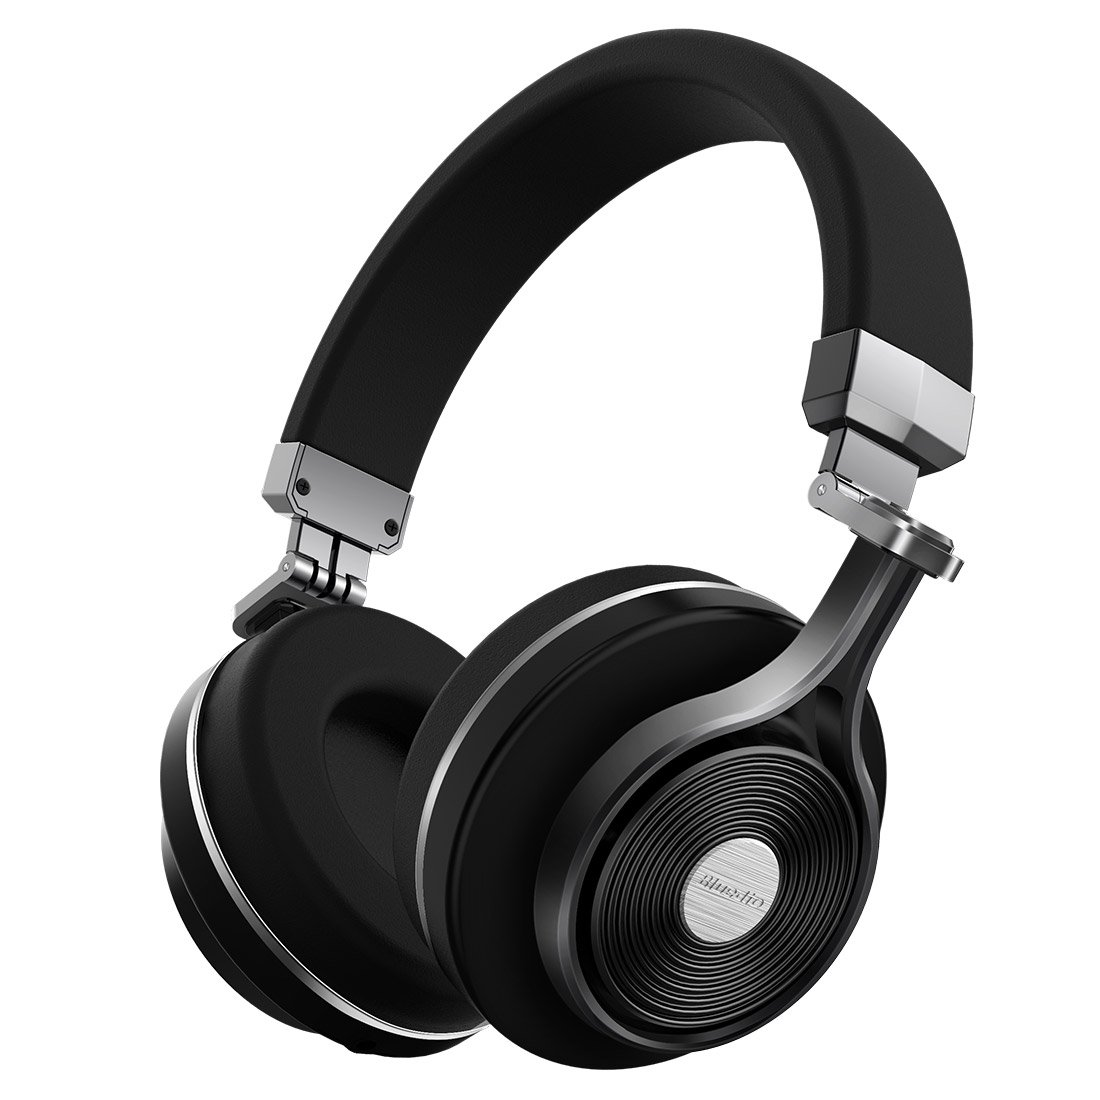 Best noise cancelling headphones under $100 5